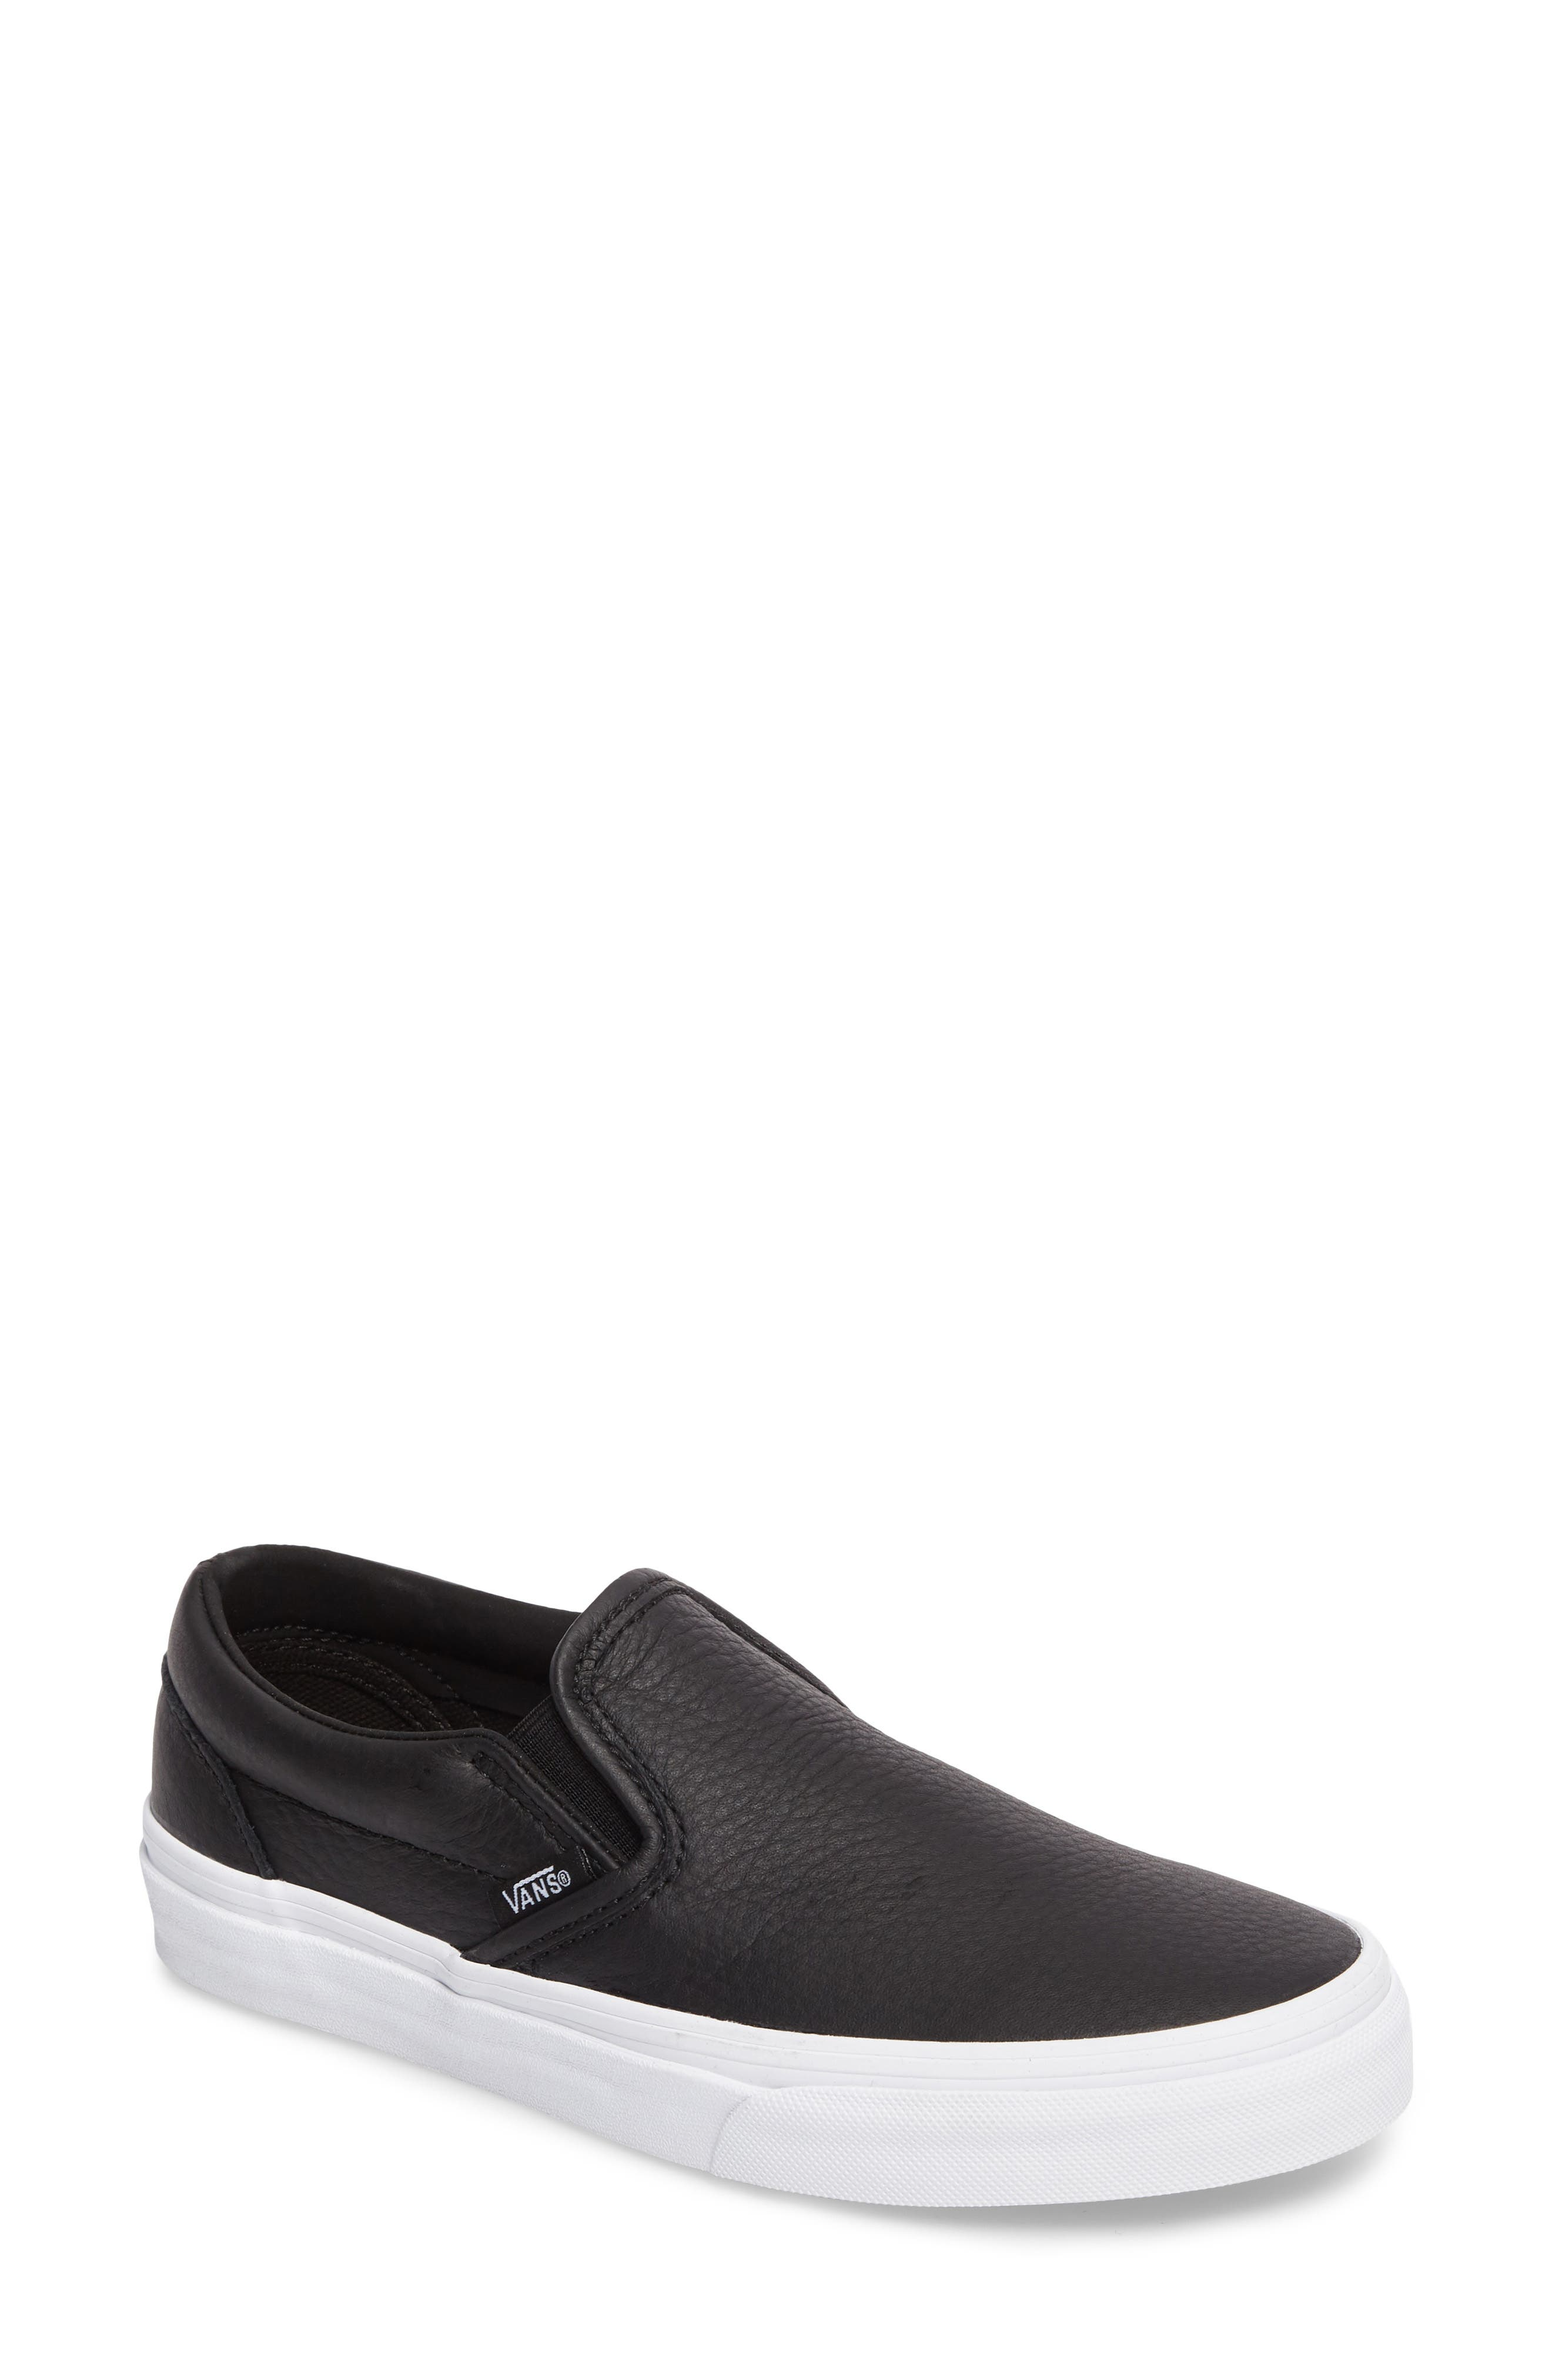 Classic Slip-On Sneaker,                         Main,                         color, Black/ True White